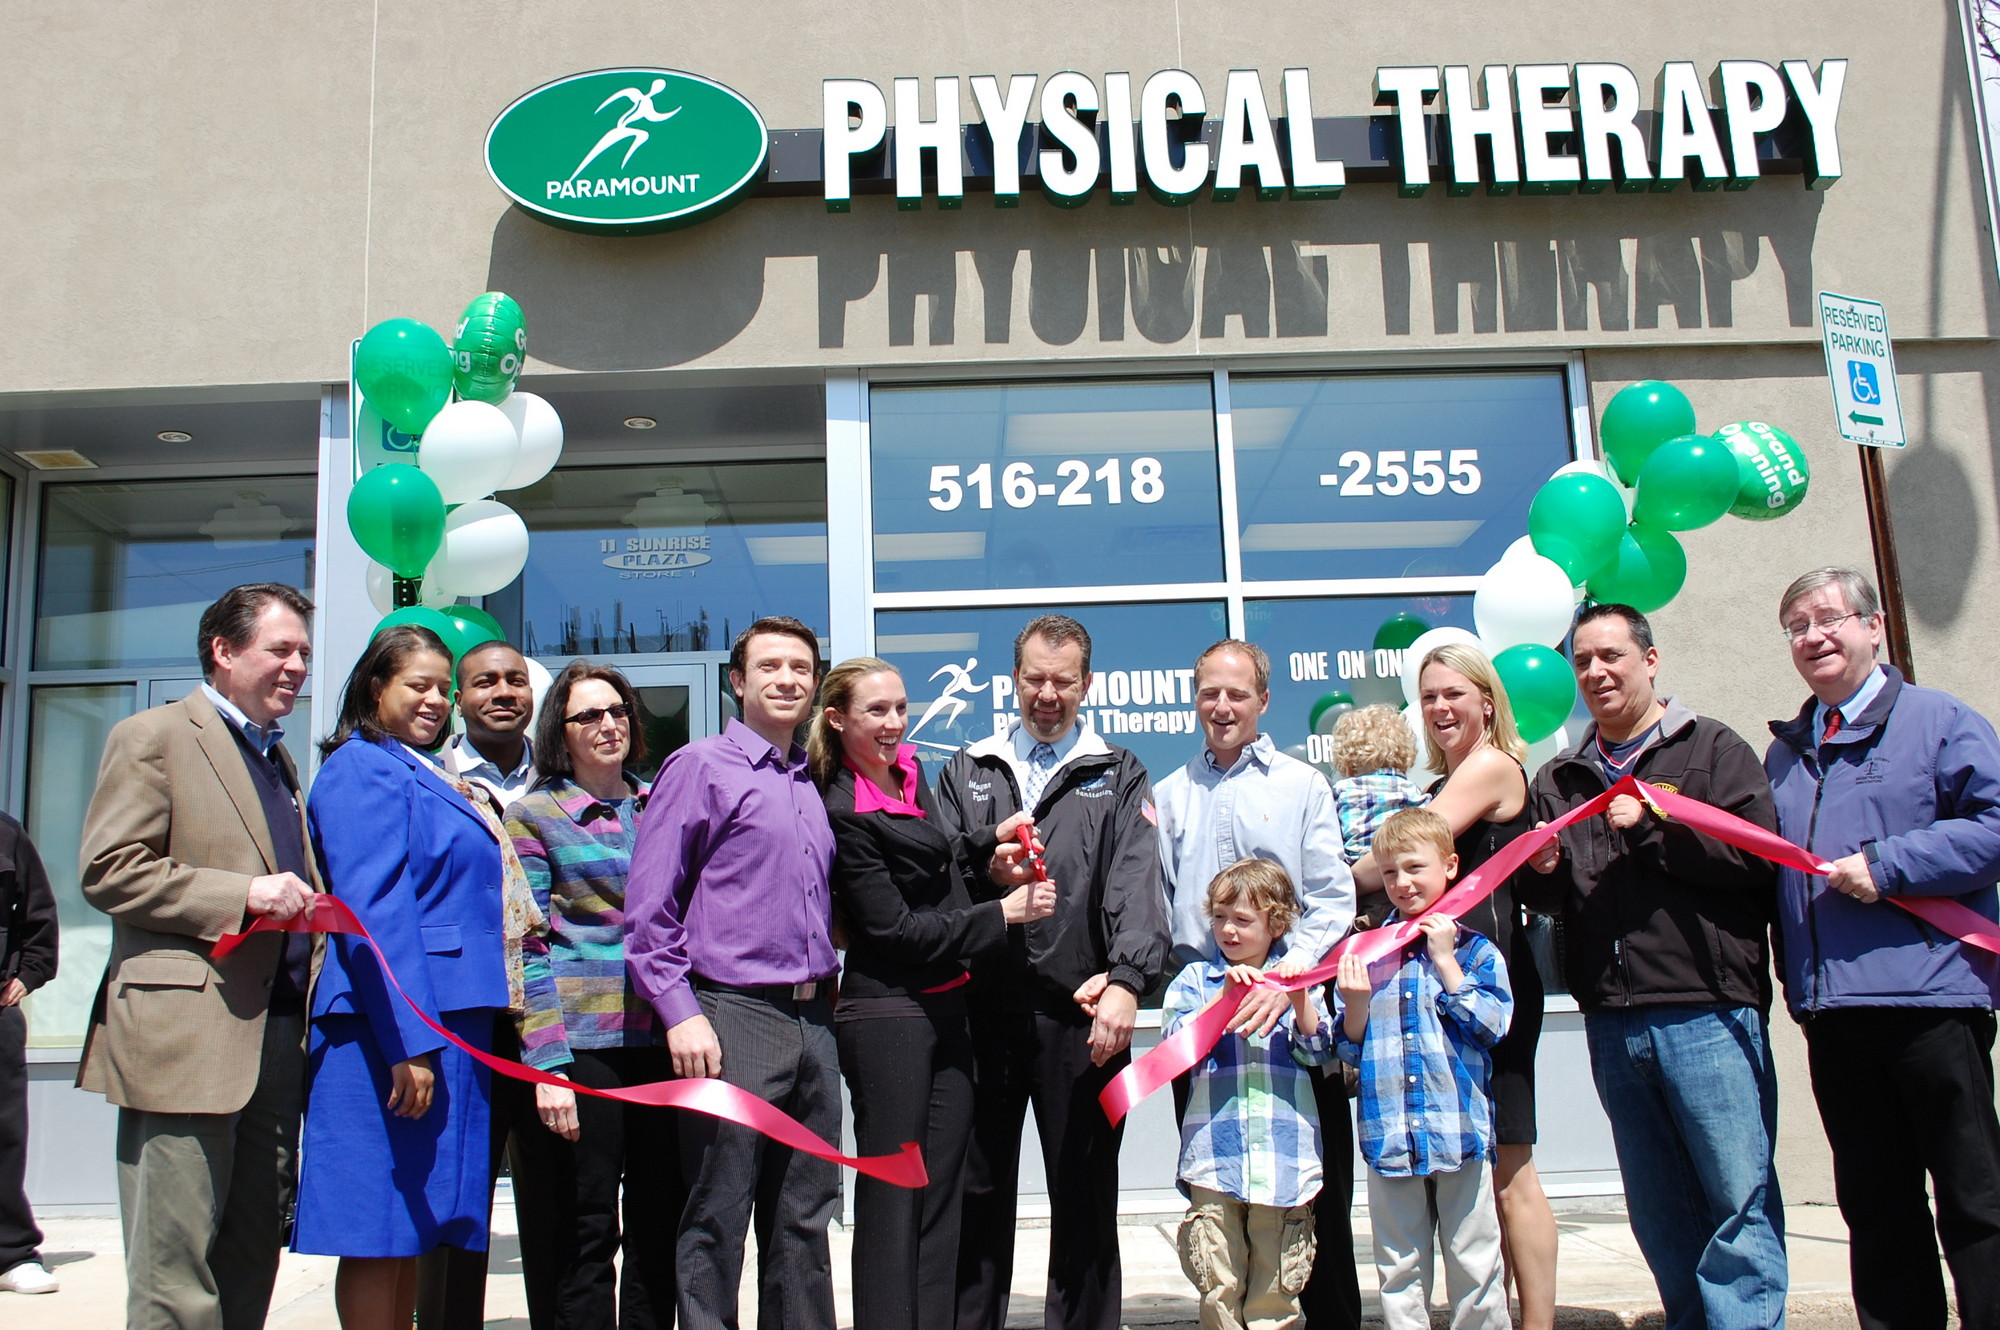 Paramount Physical Therapy on Sunrise Plaza celebrating it's grand opening with a ribbon-cutting ceremony on April 13.